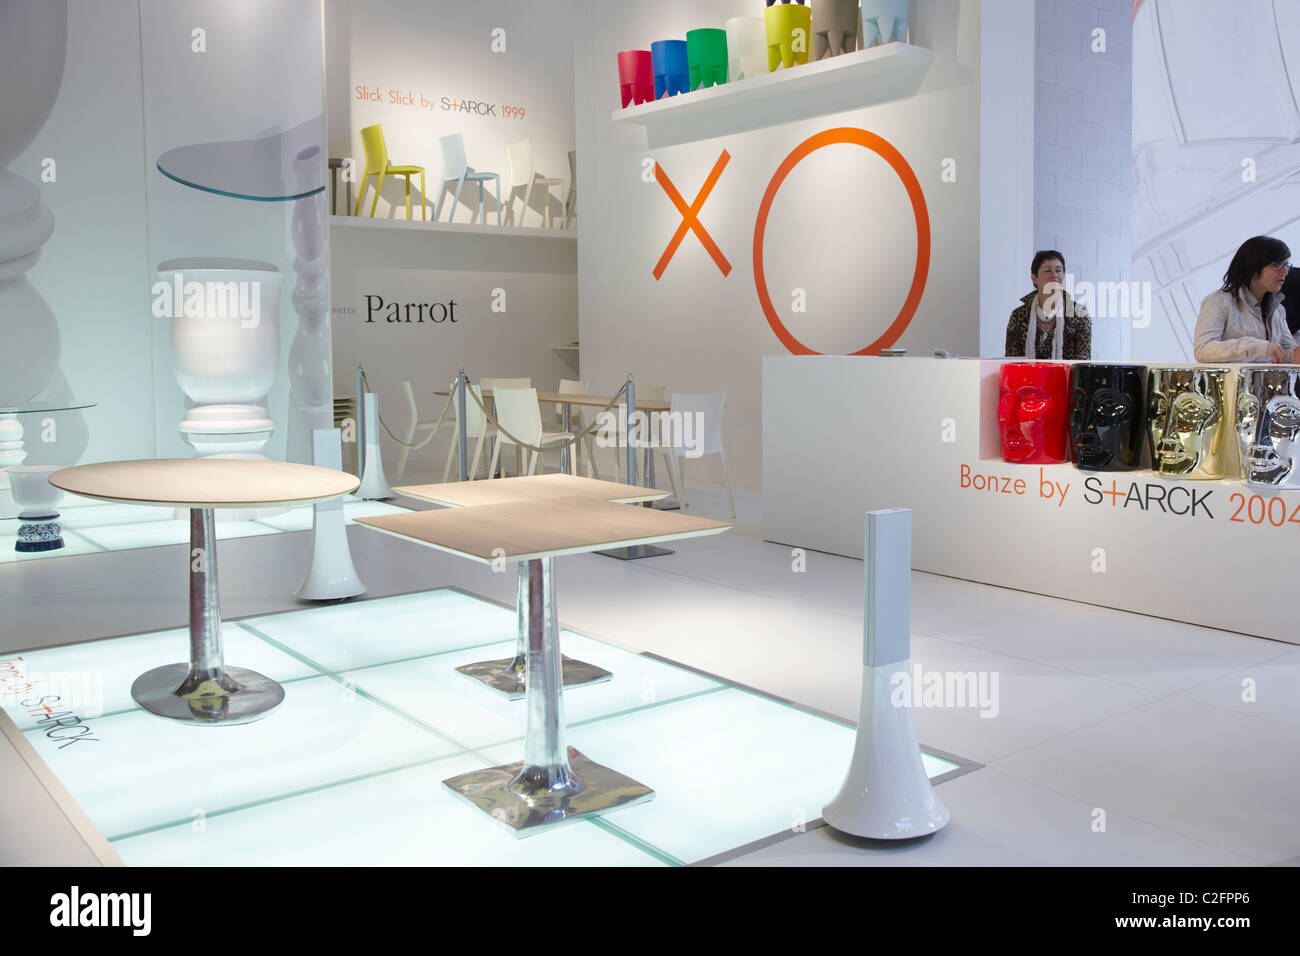 Salone Del Mobile, Milan 2011, Furniture Fair, Starck Design   Stock Image